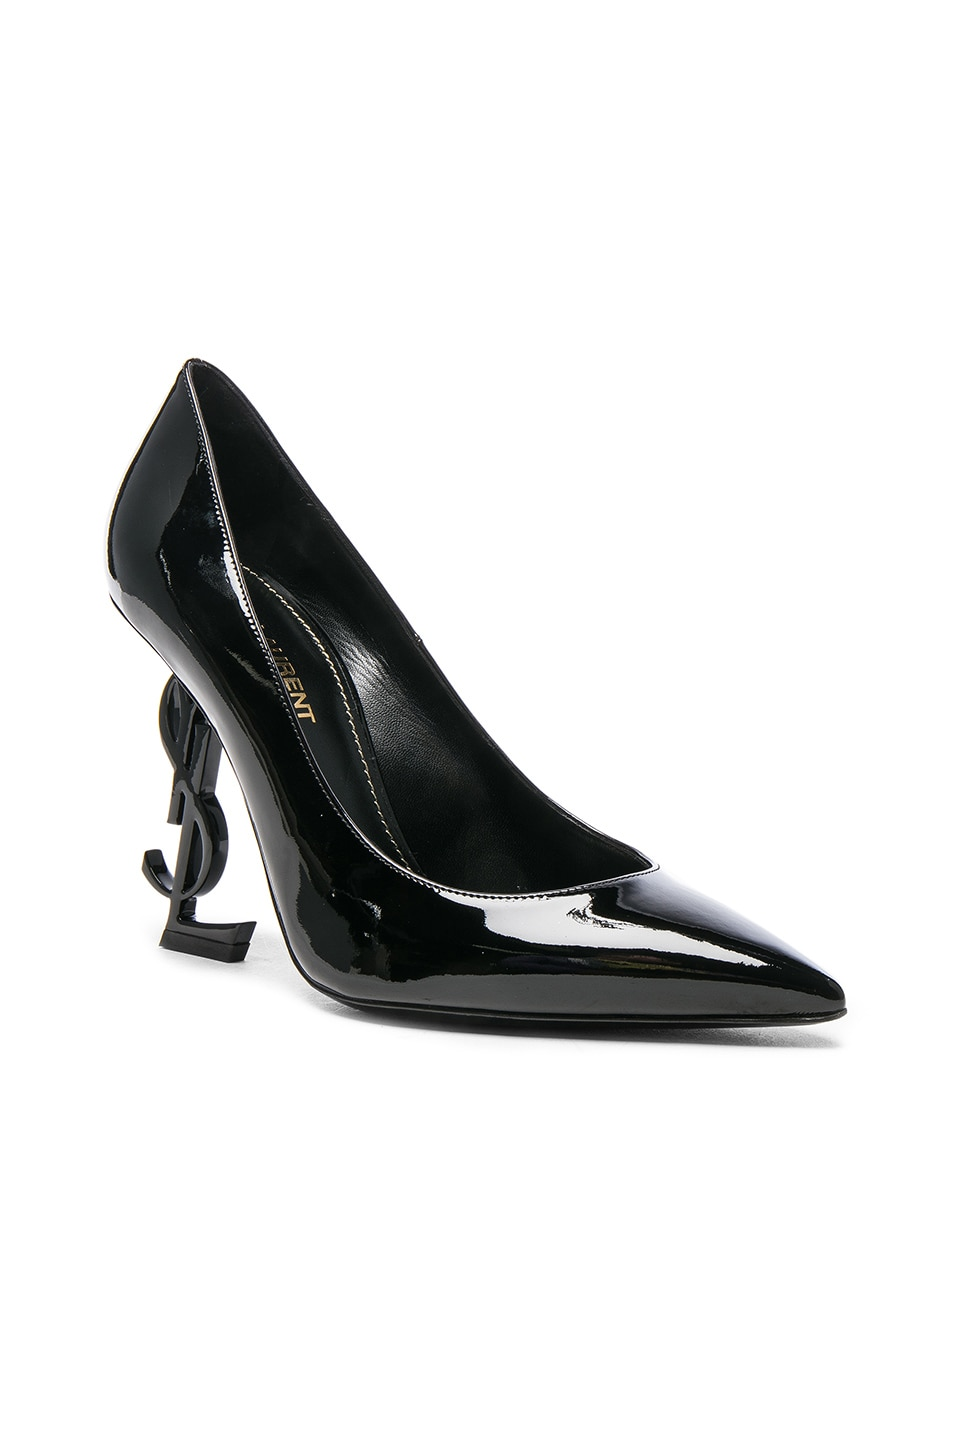 Saint Laurent Black Patent Leather Tribute Strappy